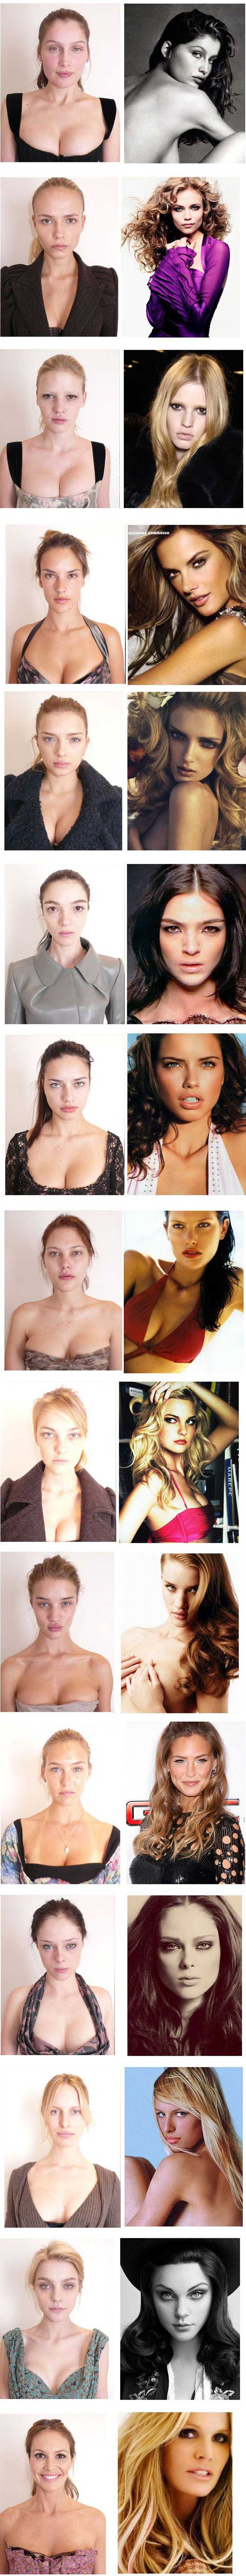 Supermodel's without makeup